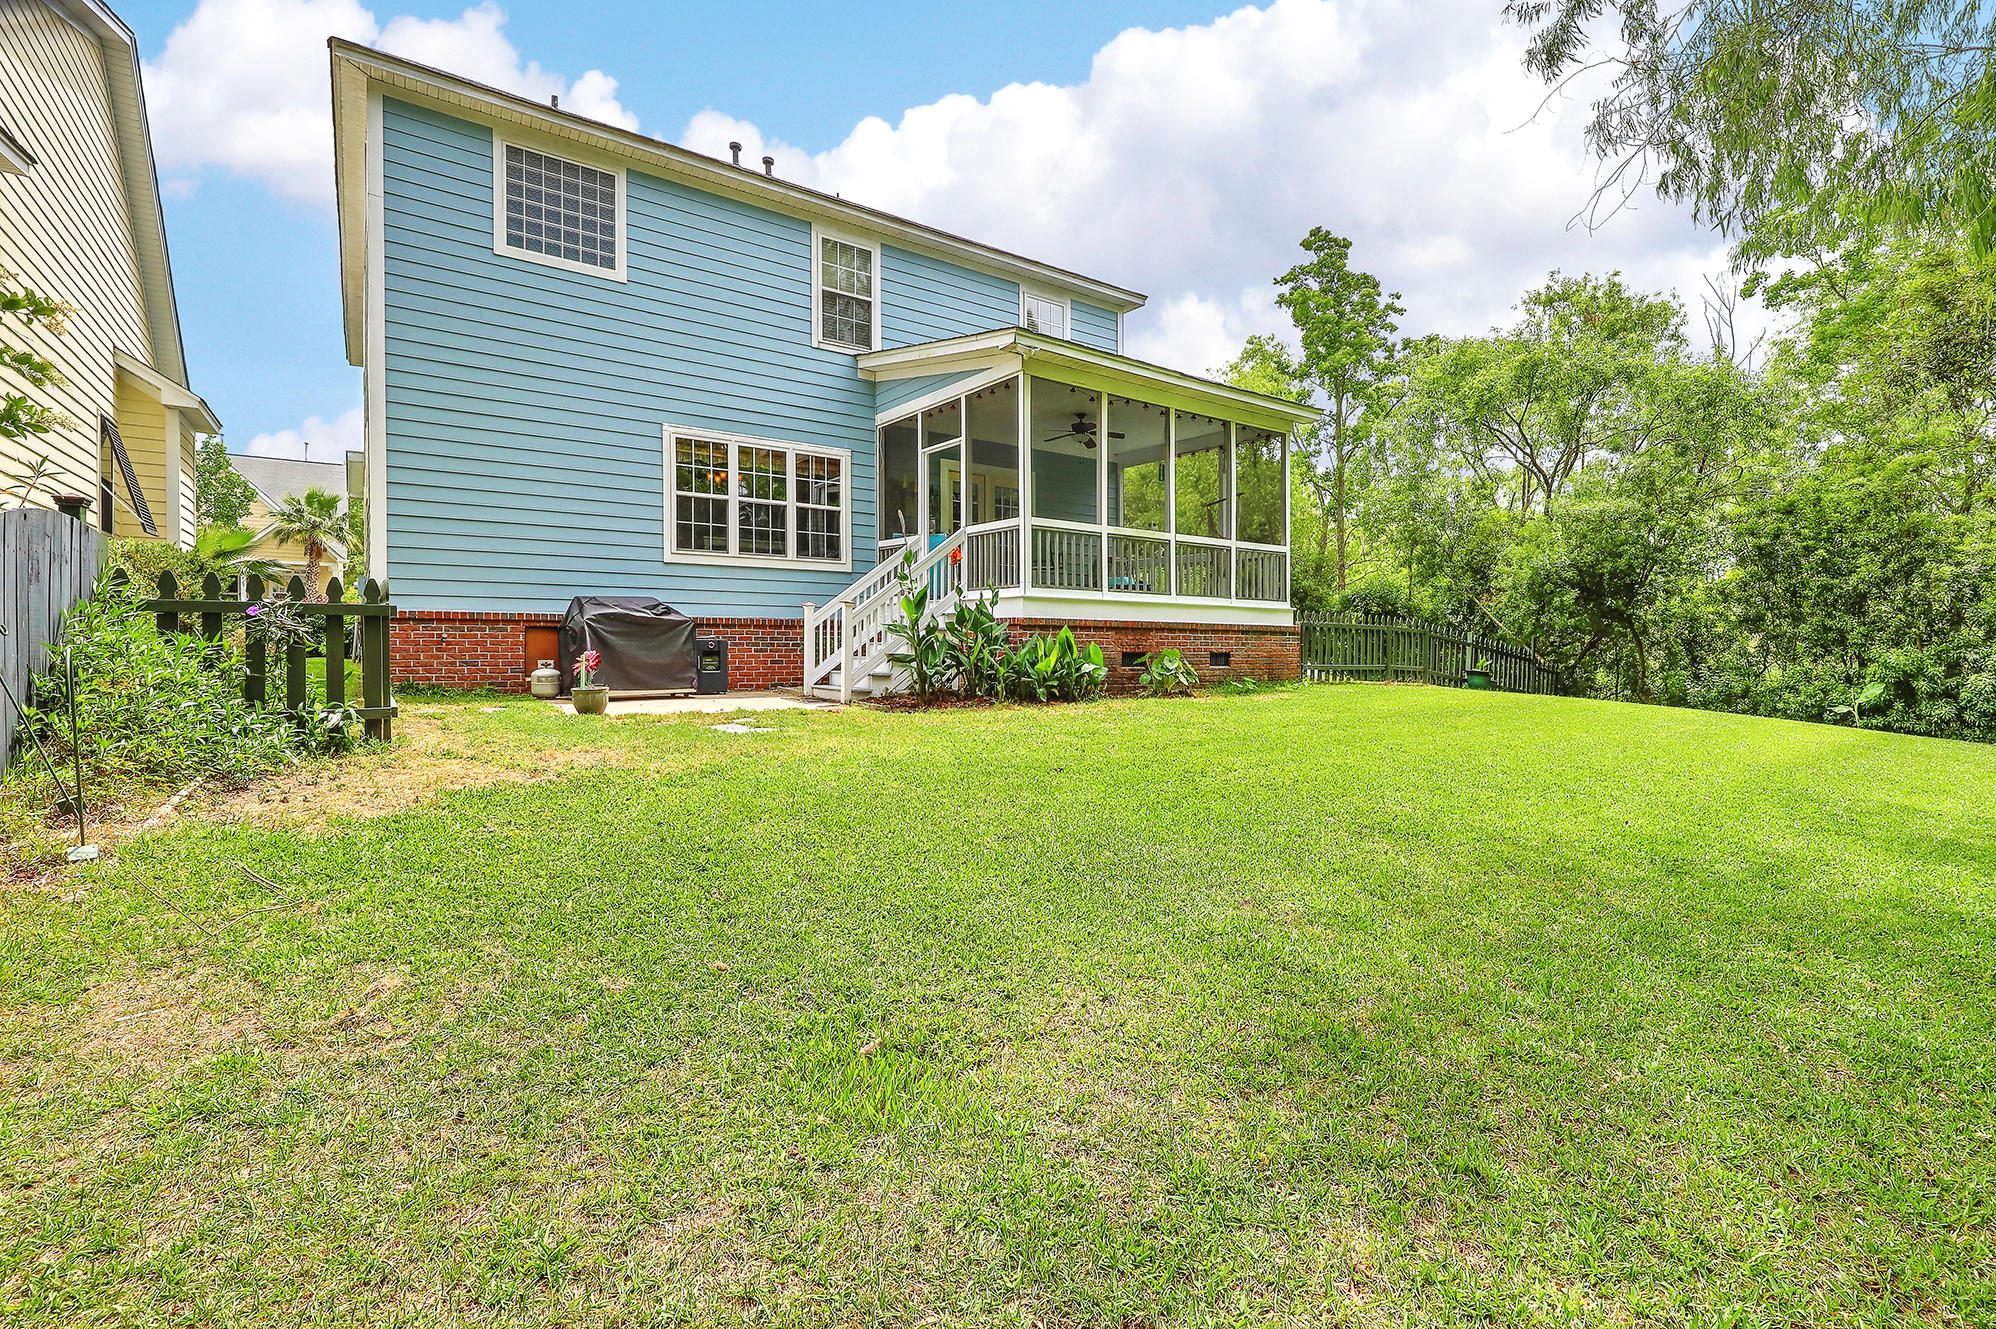 Rivertowne On The Wando Homes For Sale - 2182 Sandy Point Lane, Mount Pleasant, SC - 3